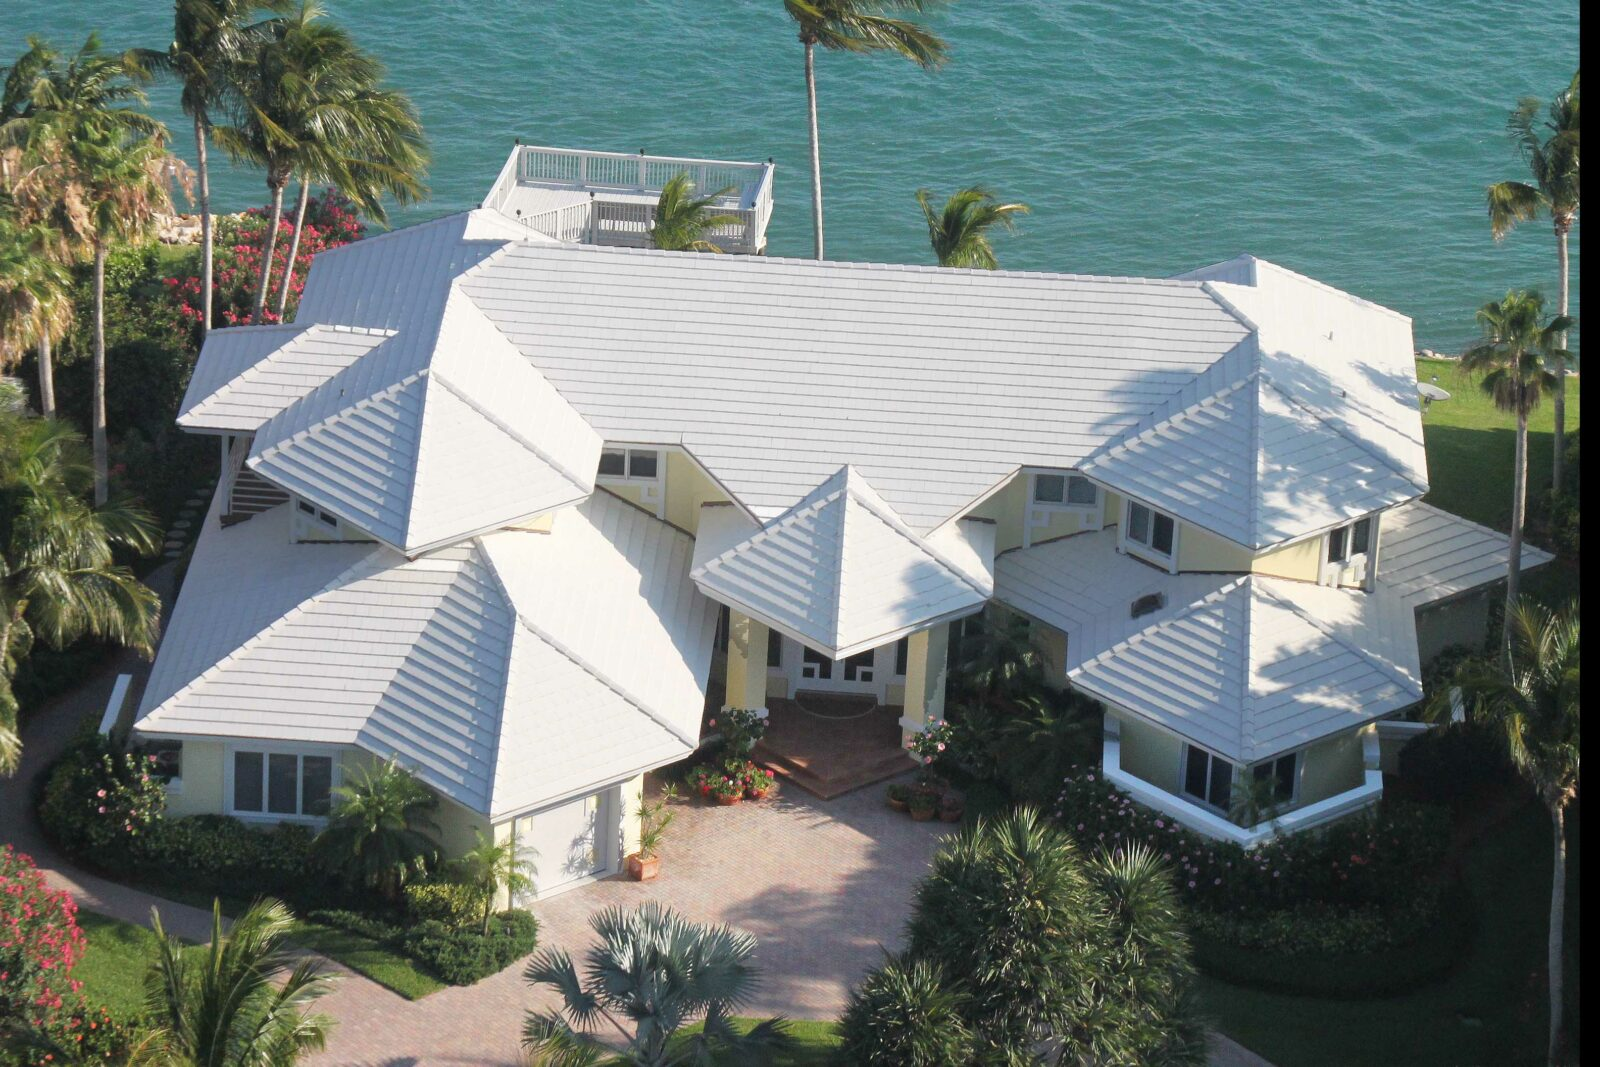 About Miami Roofing